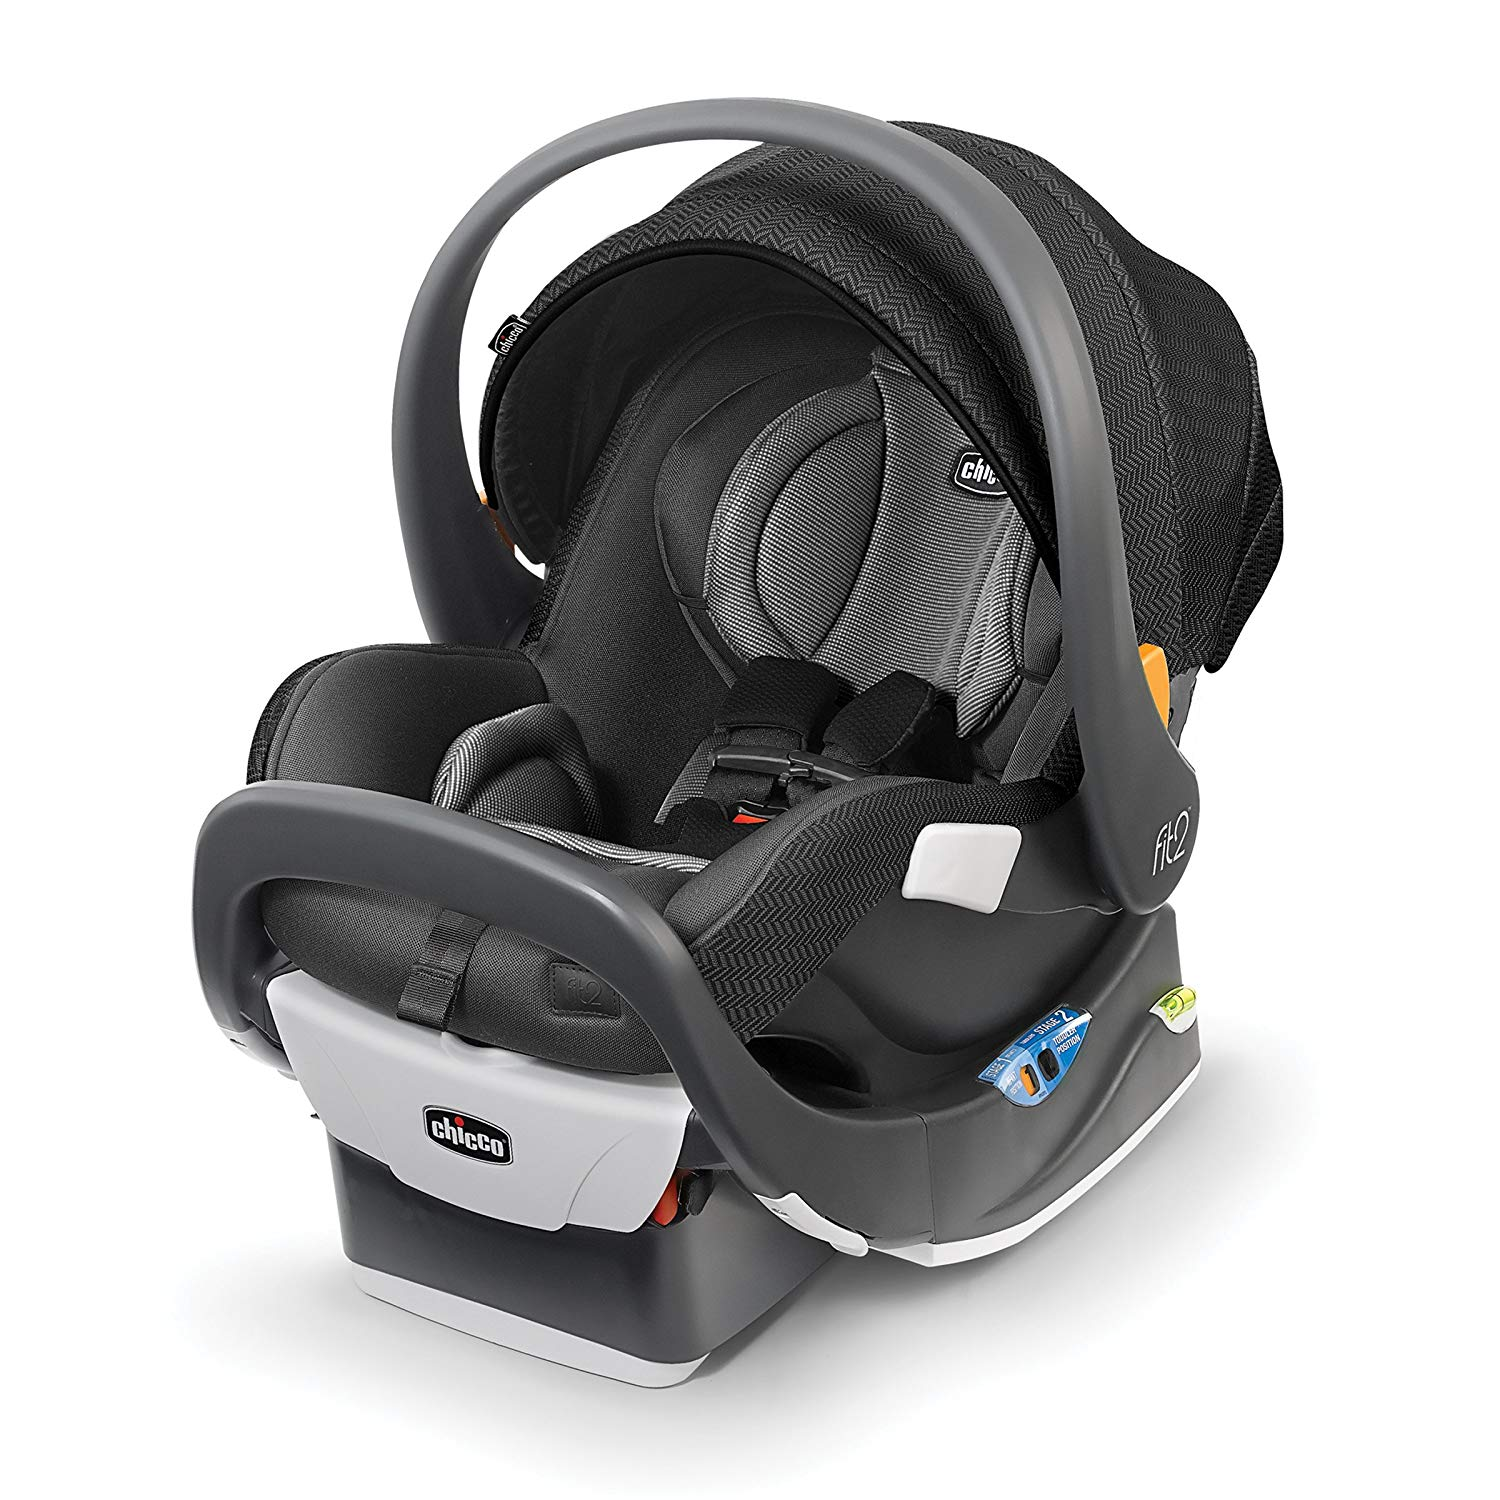 Fit2 Infant/Toddler Car Seat with Base